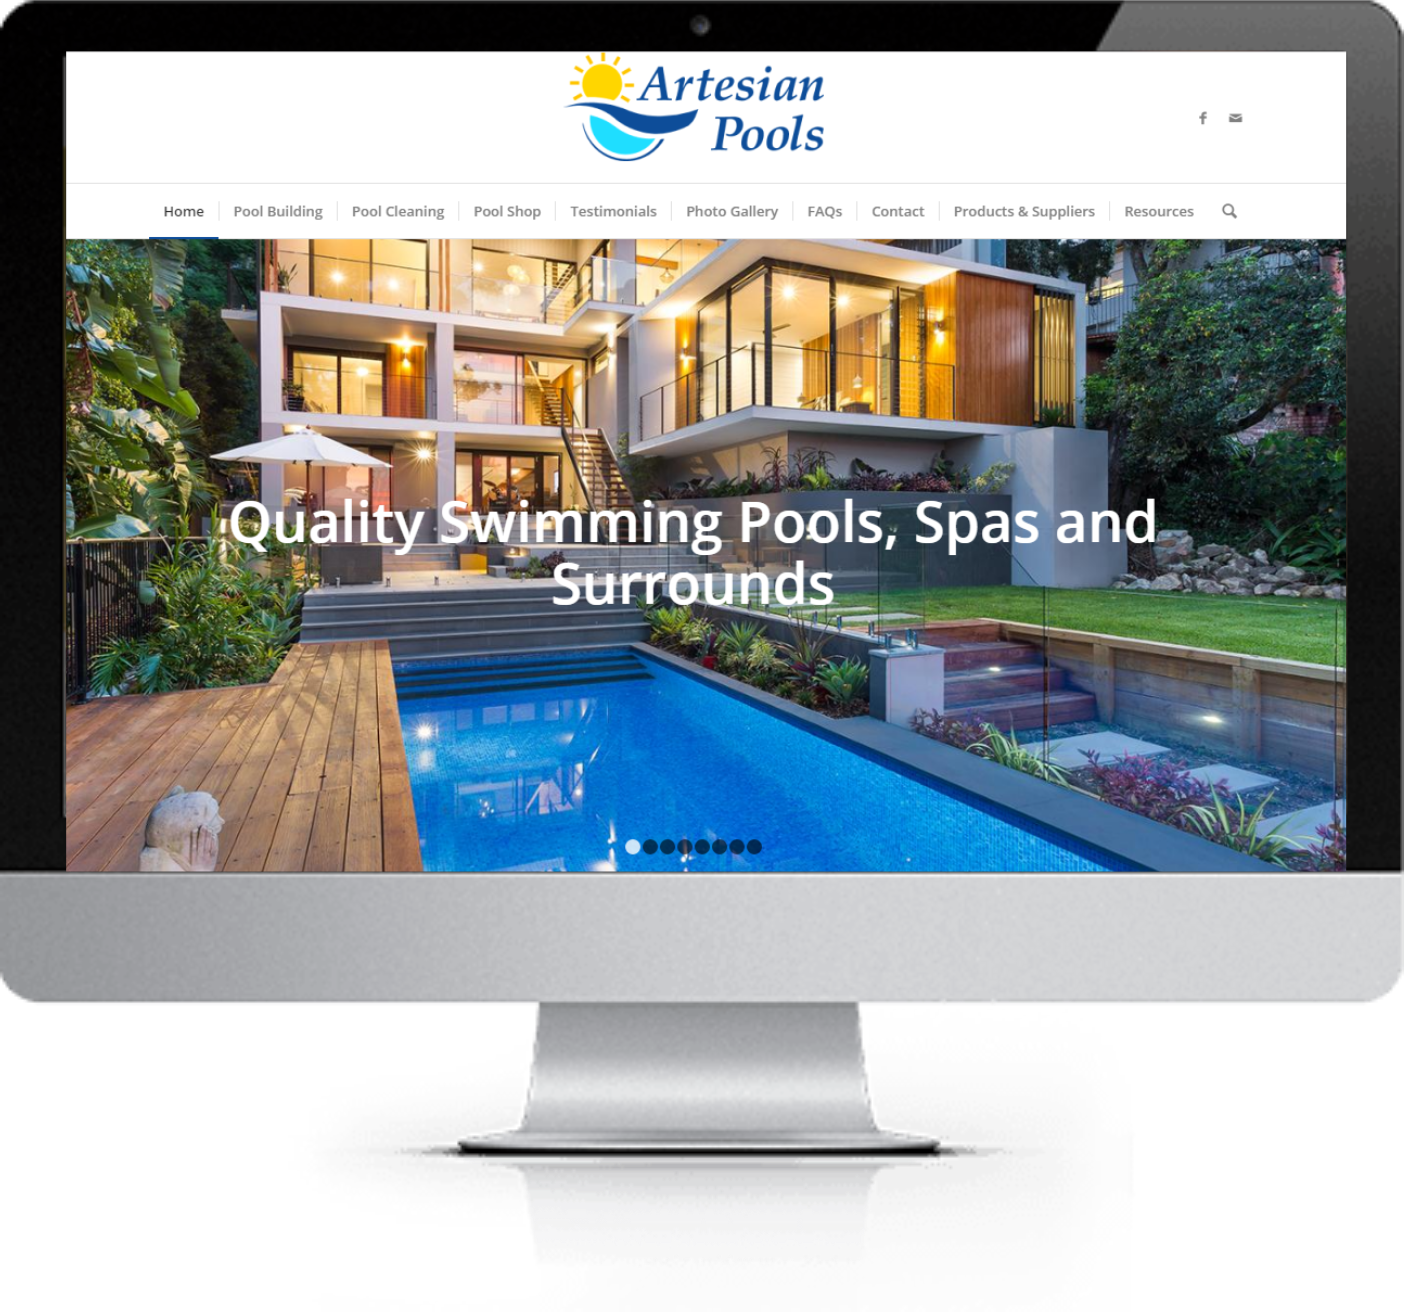 Website Design - Artesian Pools